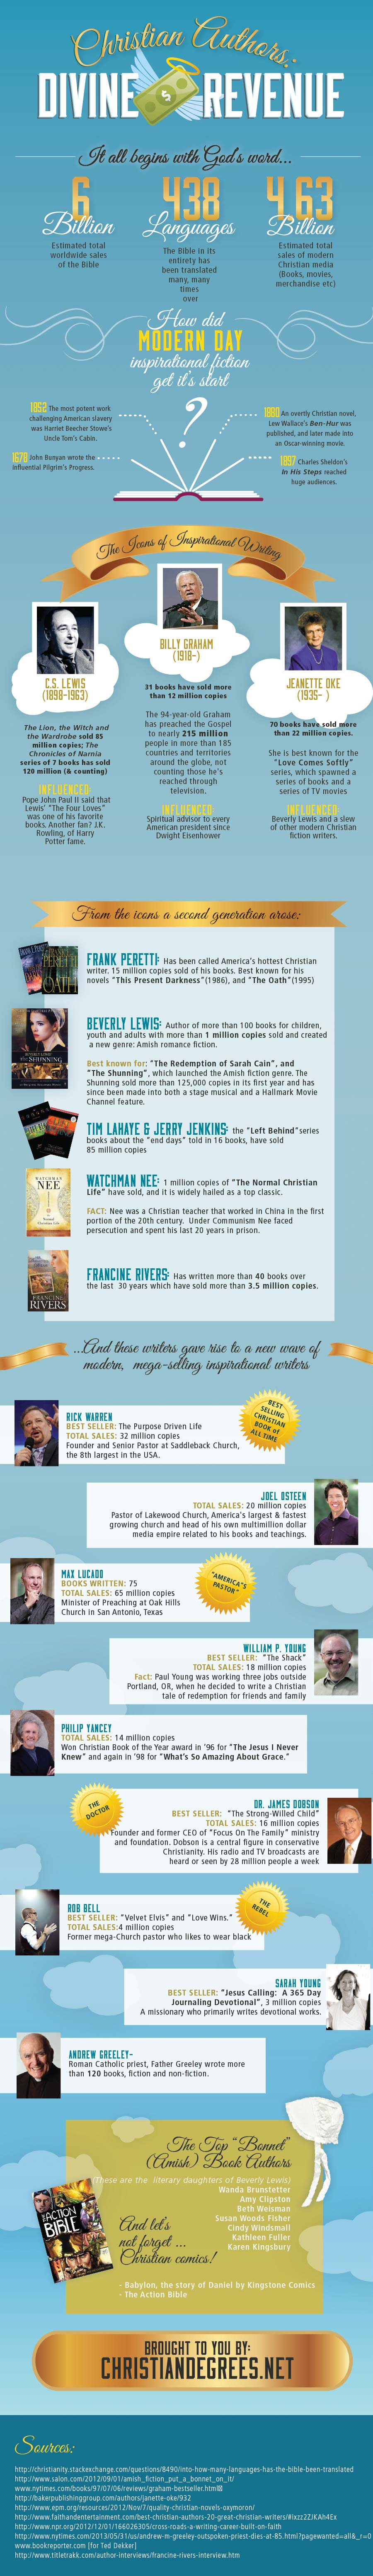 Bible Sales Worldwide-Infographic